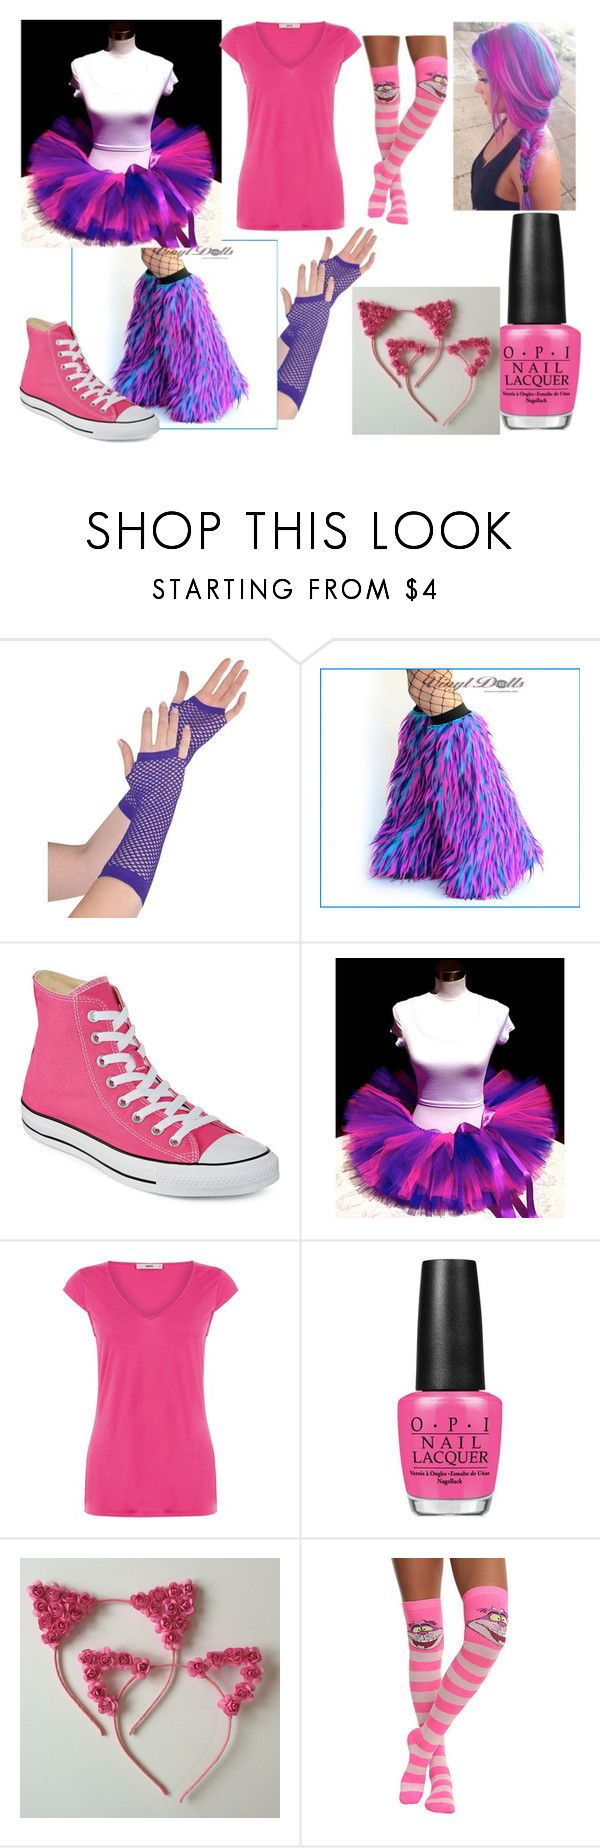 """Cheshire cat (Costume)"" by jennyparkerwoods ❤ liked on Polyvore featuring Converse, Oasis, OPI and Disney"